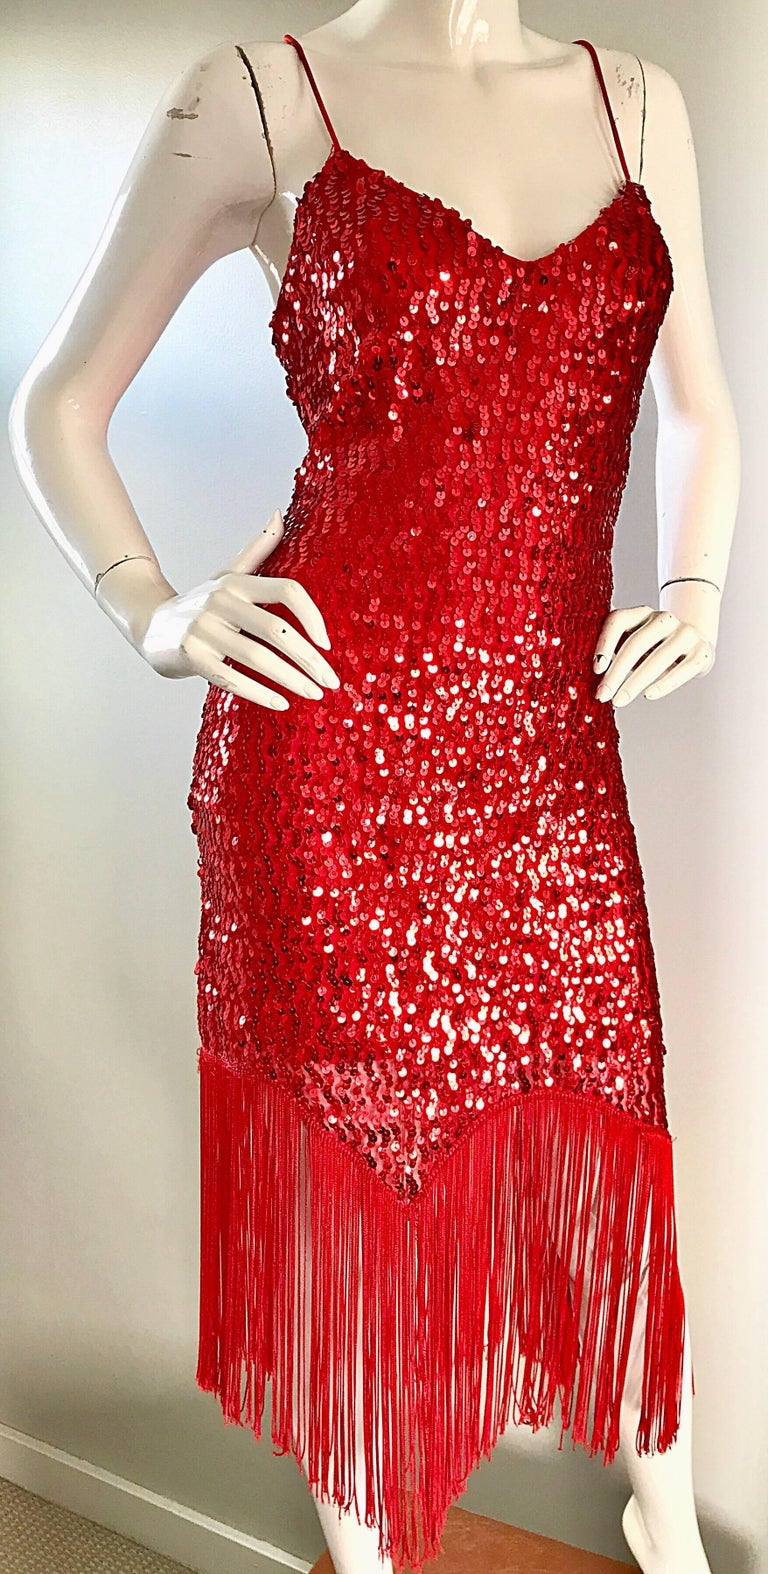 Vintage Joy Stevens 1970s Does 1920s Flapper Style Sequin Sz 10 Fringe Red Dress For Sale 4